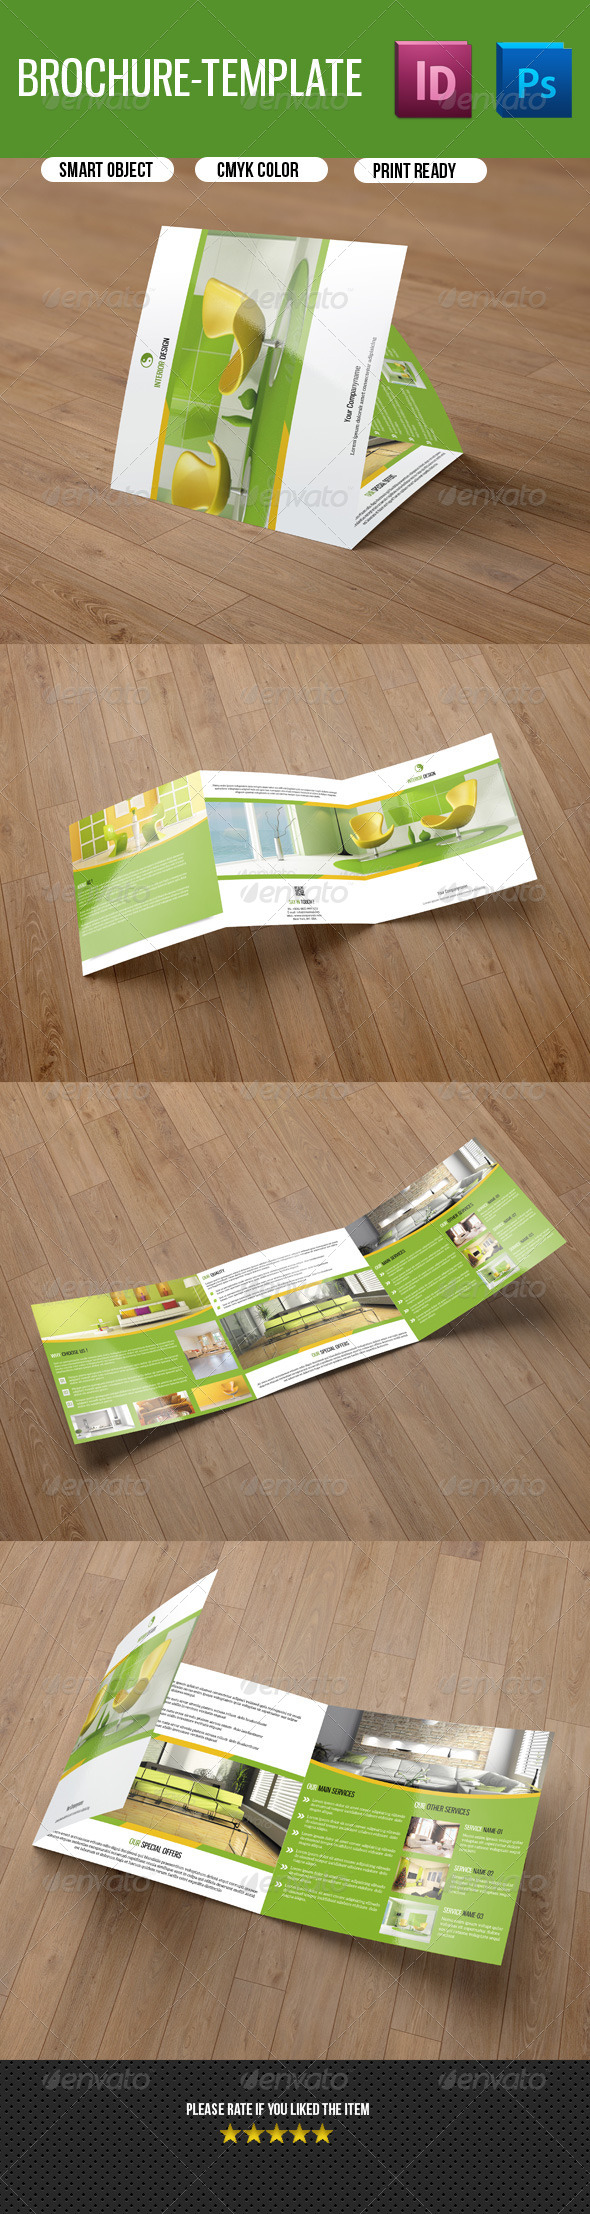 Square Trifold Brochure for Interior Design-V33